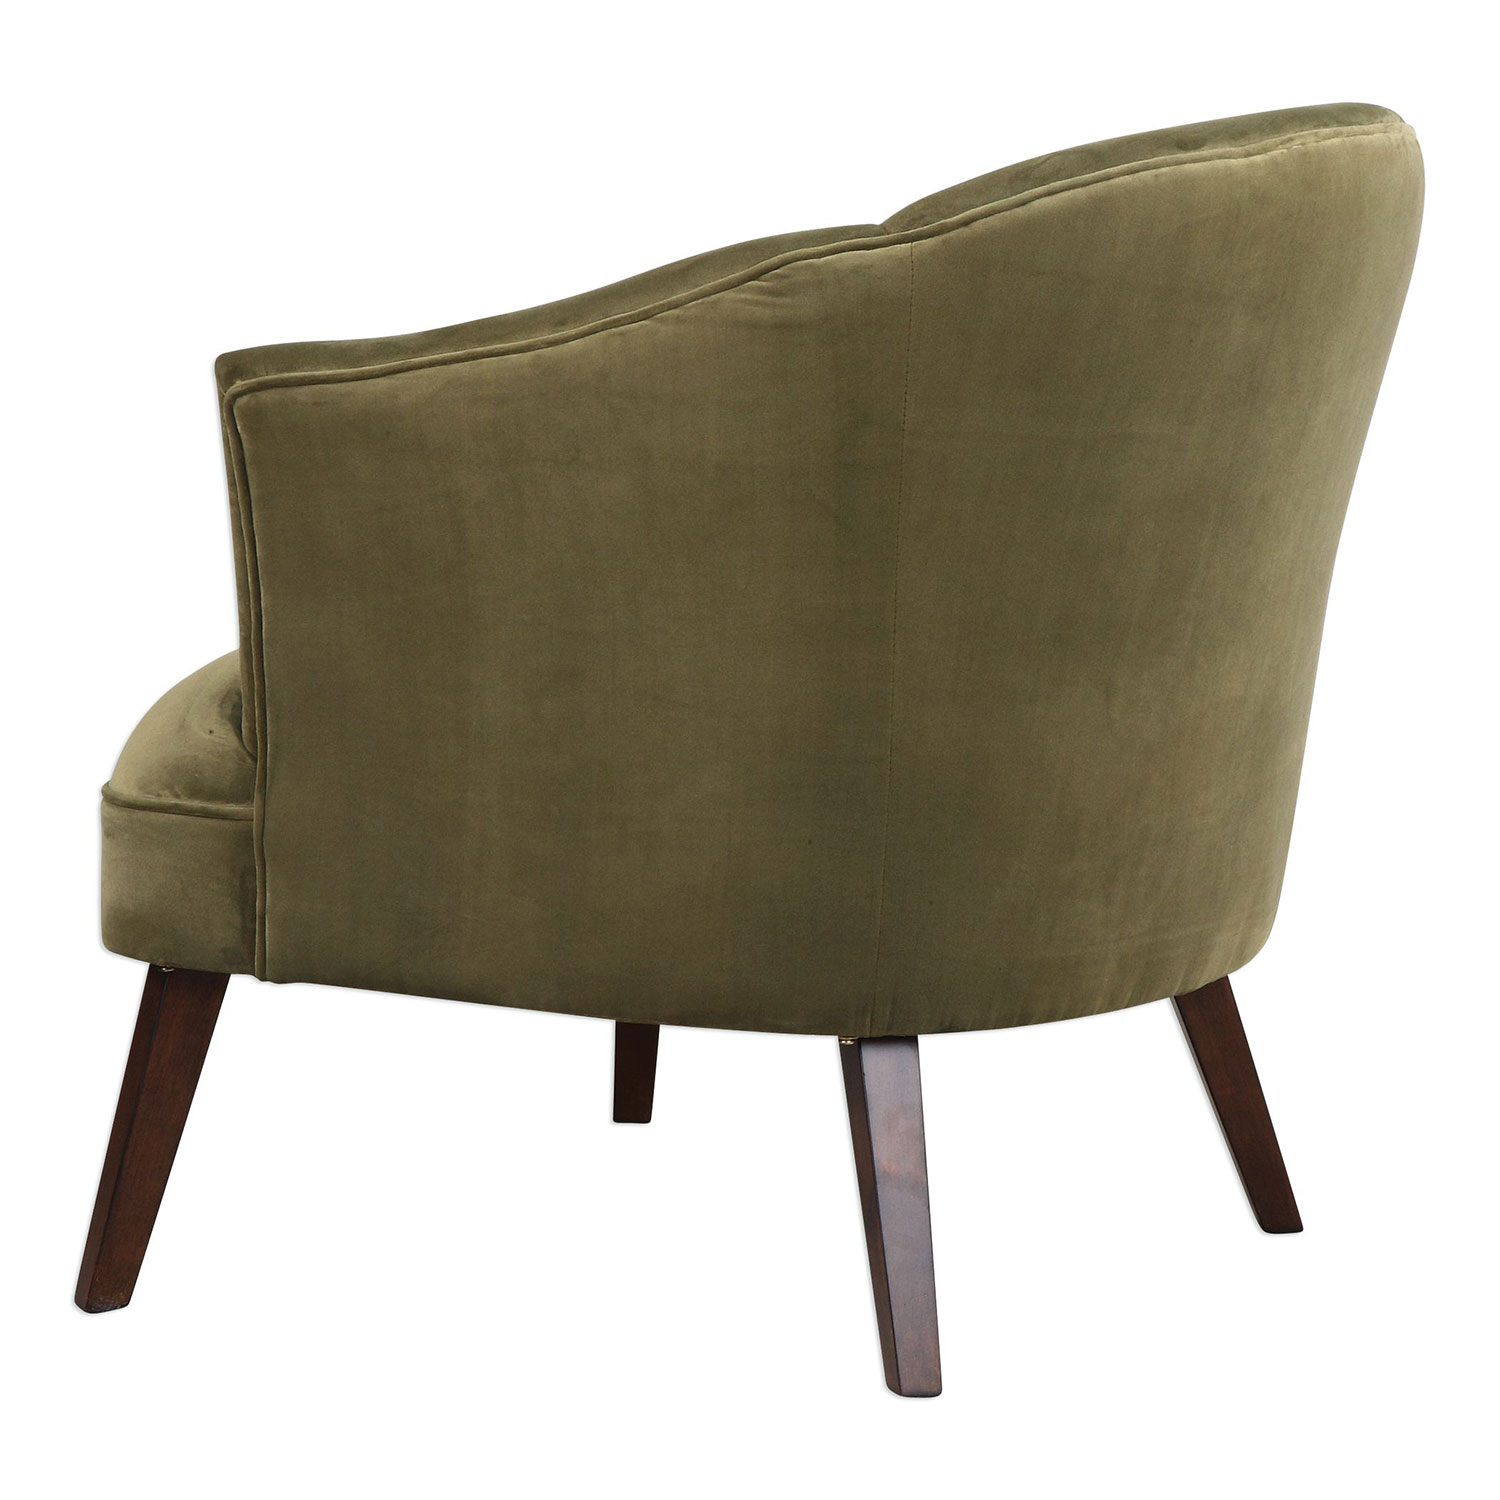 Uttermost Conroy Accent Chair - Olive